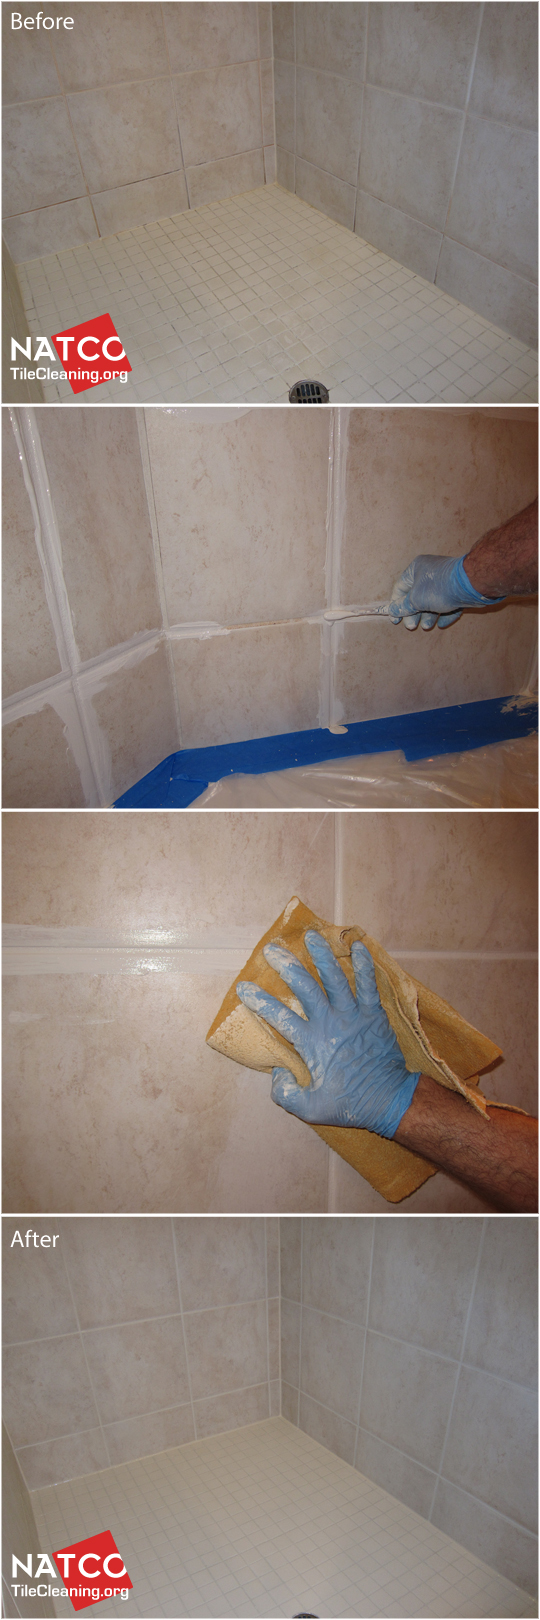 How To Clean And Whiten Grout In A Tile Shower Cleaning